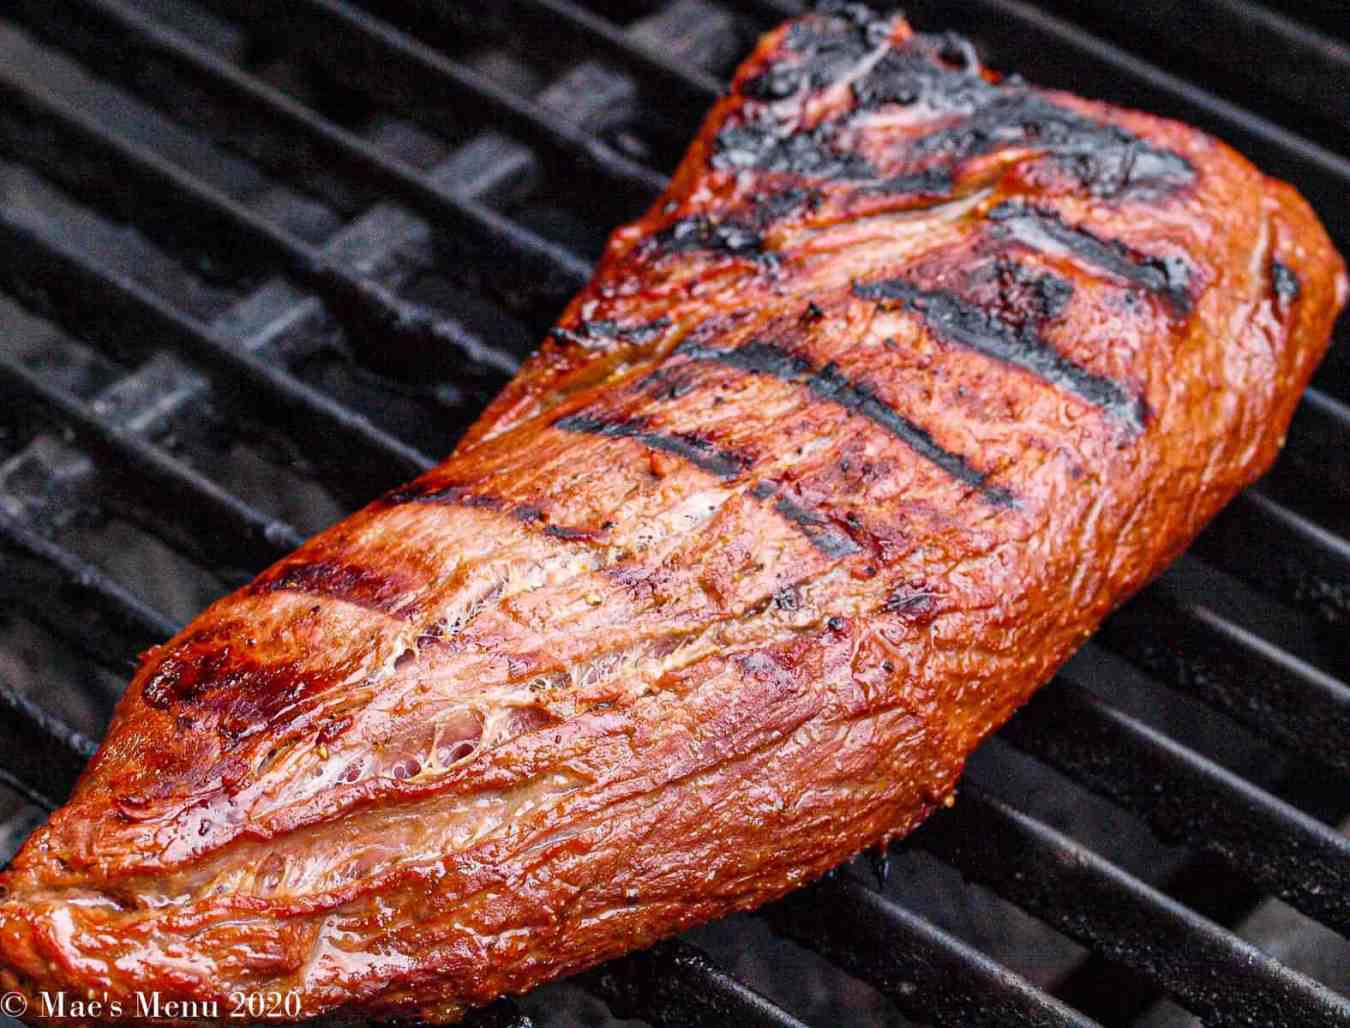 A piece of tri-tip on the grill.